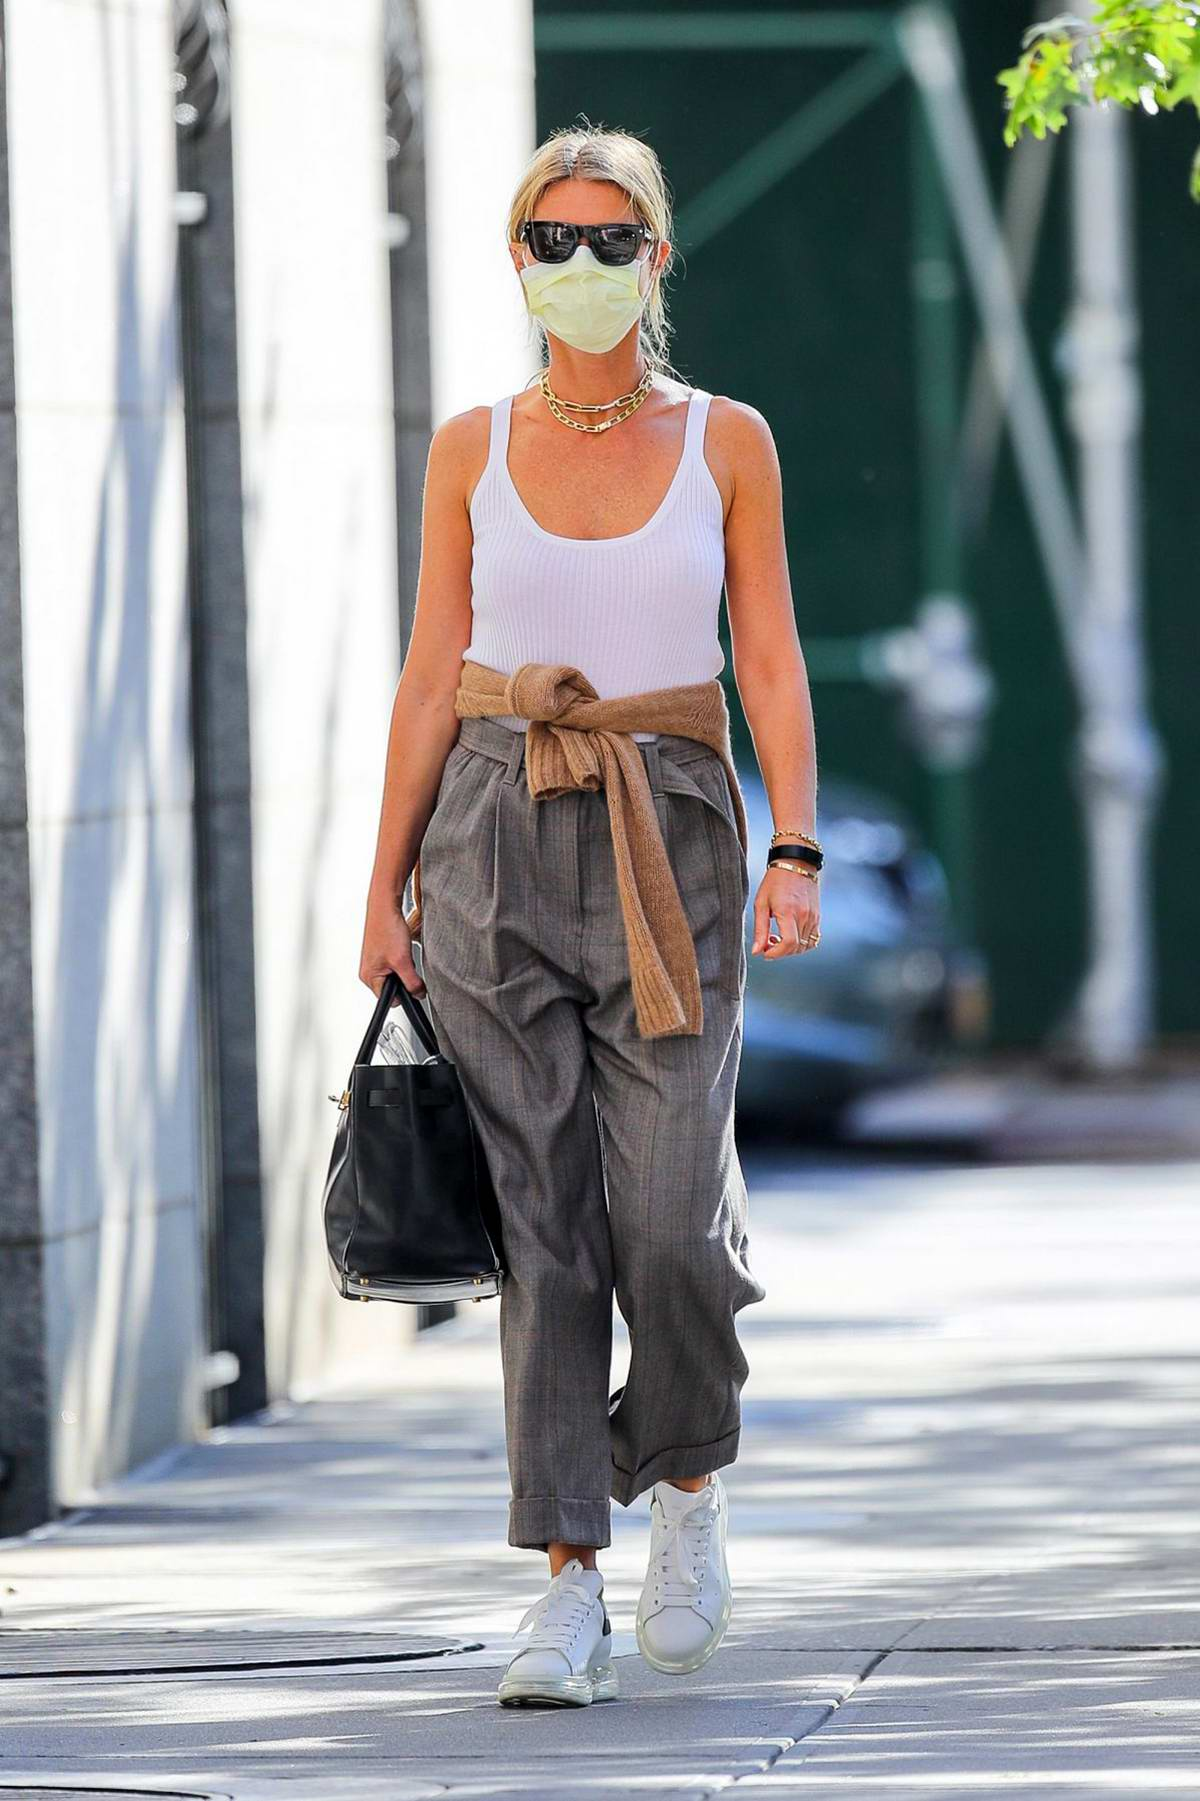 Gwyneth Paltrow keeps it stylish in a white tank top and gray trousers as she steps out in New York City